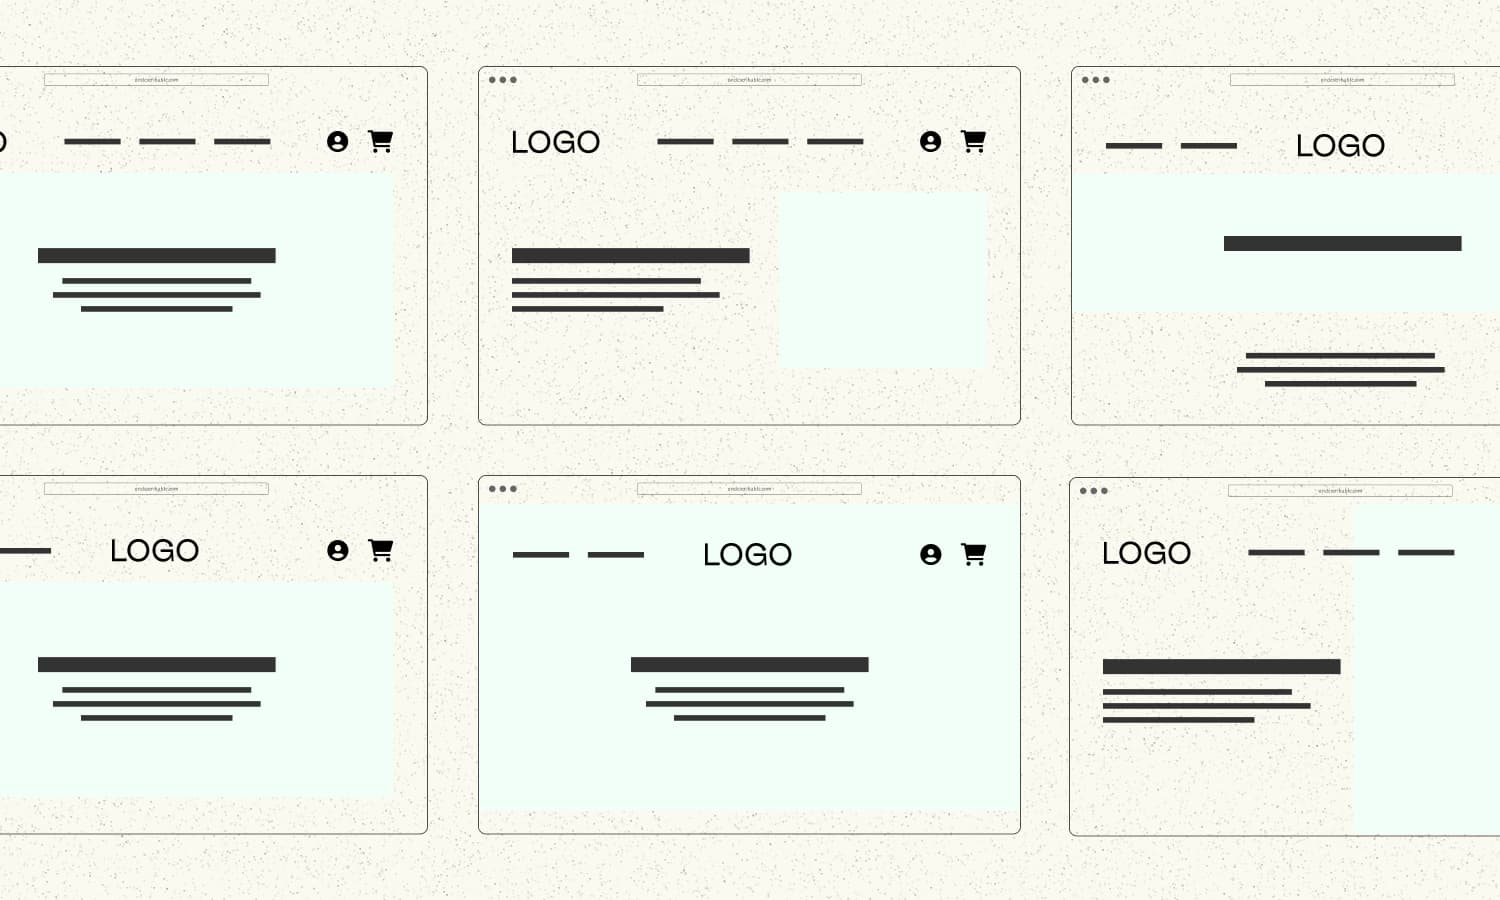 home page wireframes showing similarities between popular website layouts